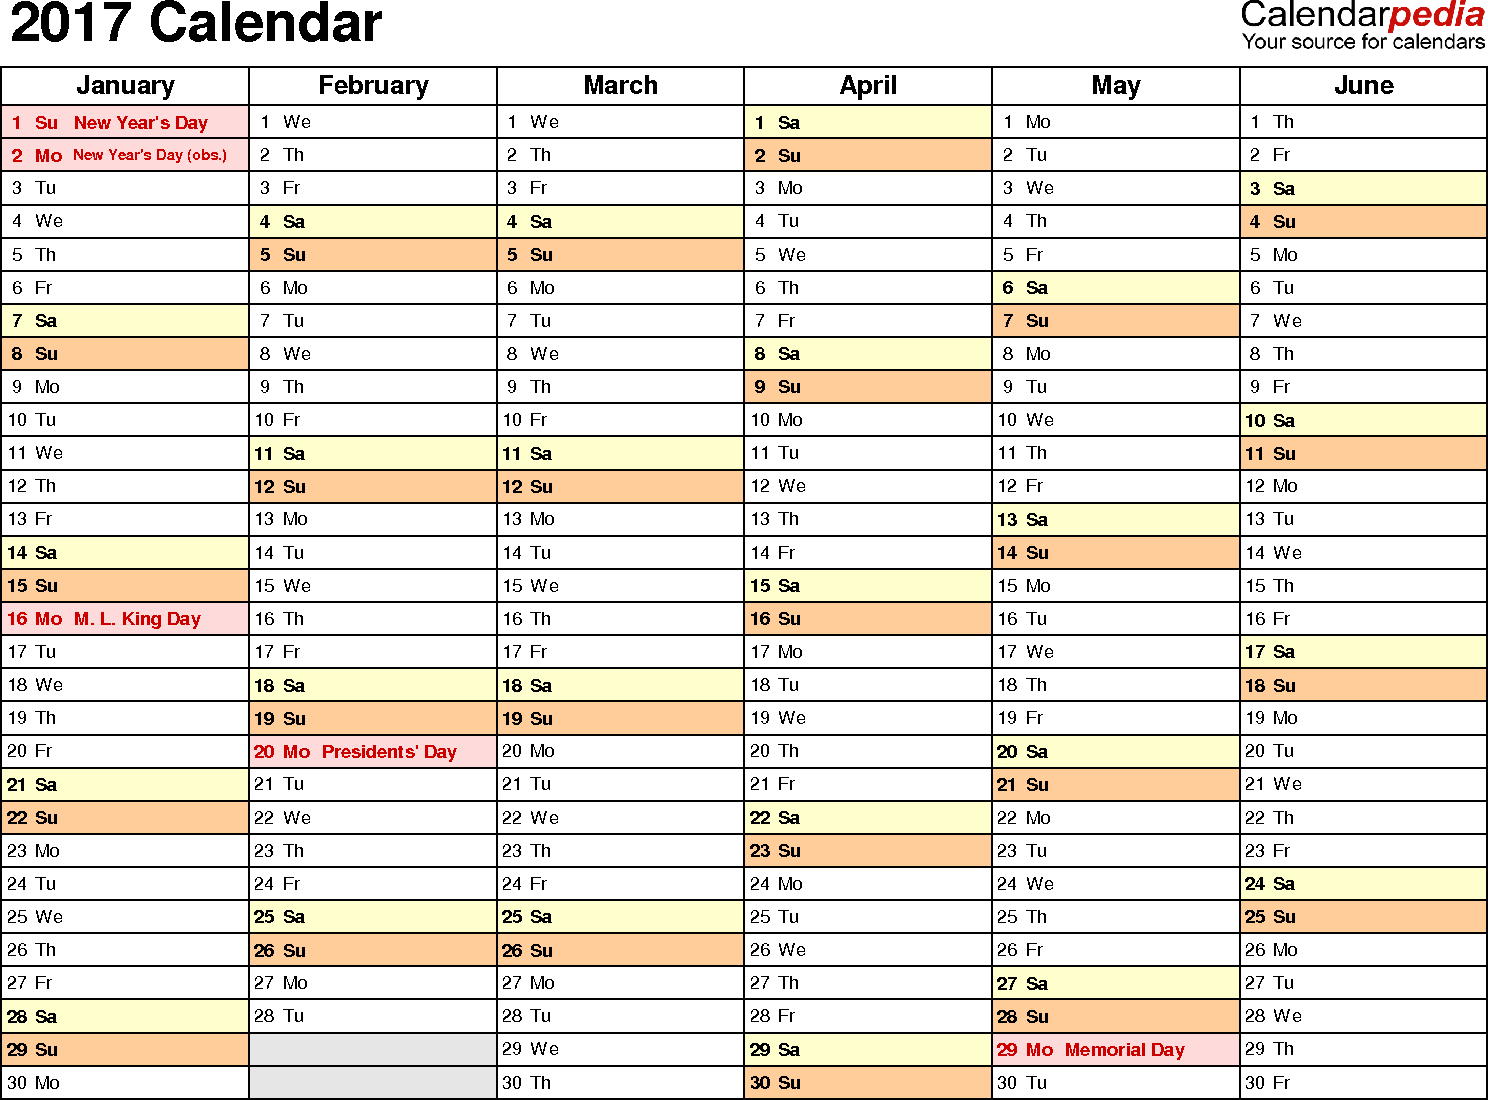 Ediblewildsus  Mesmerizing  Calendar  Download  Free Printable Excel Templates Xls With Inspiring Template   Calendar For Excel Months Horizontally  Pages Landscape Orientation With Delectable Excel Vba Find Next Also Save Excel As Html In Addition Setting Up Excel Spreadsheet And What Is The Average Formula In Excel As Well As Microsoft Excel Add In Additionally Mail Merge Excel Outlook From Calendarpediacom With Ediblewildsus  Inspiring  Calendar  Download  Free Printable Excel Templates Xls With Delectable Template   Calendar For Excel Months Horizontally  Pages Landscape Orientation And Mesmerizing Excel Vba Find Next Also Save Excel As Html In Addition Setting Up Excel Spreadsheet From Calendarpediacom